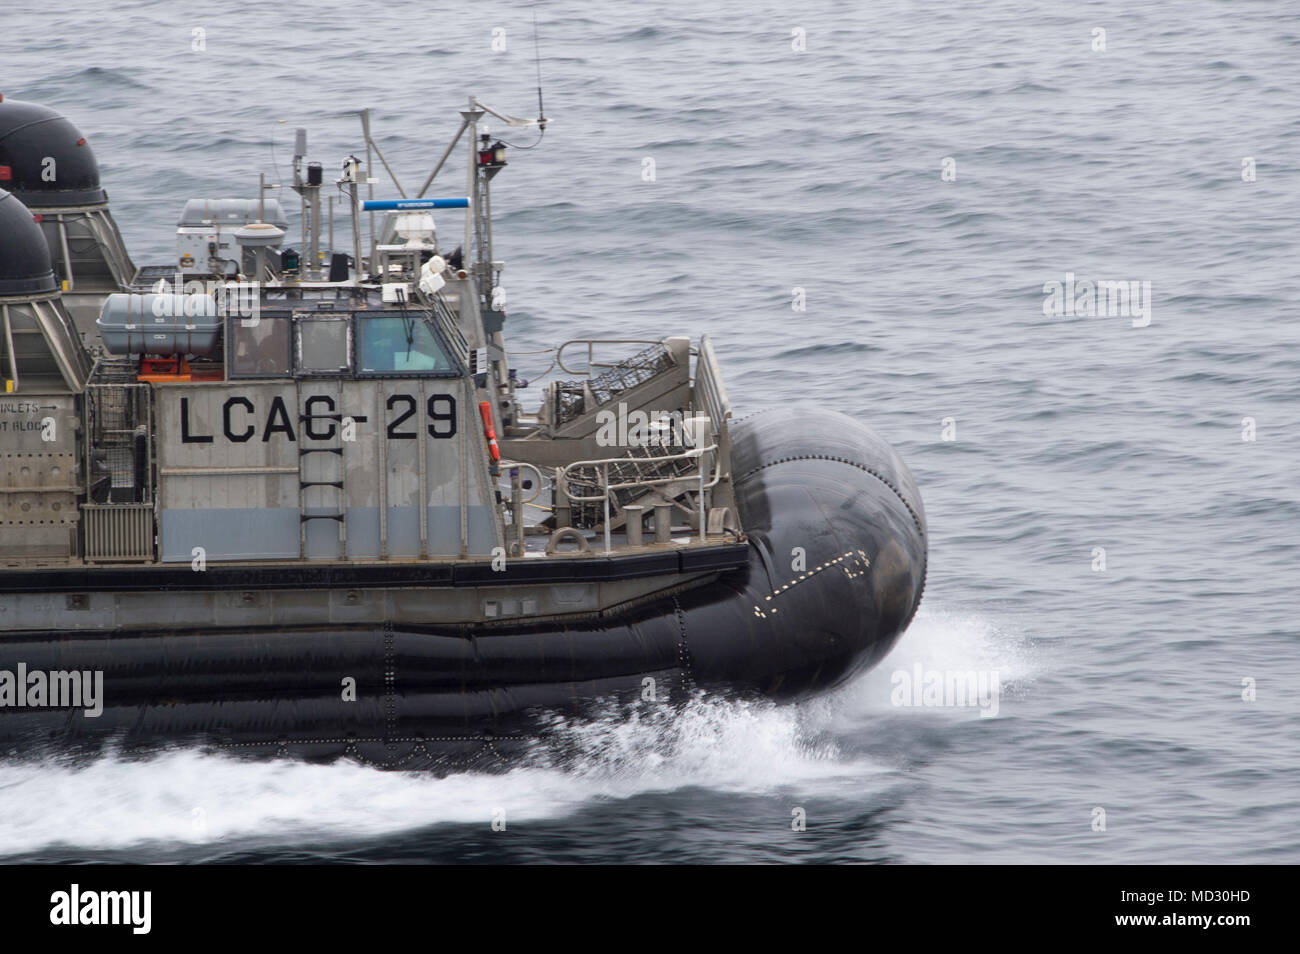 180417-N-FF029-032 SASEBO, Japan (April 17, 2018) Landing craft air cushion (LCAC) 29, assigned to Naval Beach Unit (NBU) 7, disembarks the amphibious assault ship USS Bonhomme Richard (LHD 6). The debarkation marks NBU 7's final deployment with Bonhomme Richard as the ship prepares for a homeport shift to San Diego after six years of being forward-deployed to Sasebo, Japan. (U.S. Navy photo by Mass Communication Specialist 3rd Class Daniel Charest/Released) - Stock Image